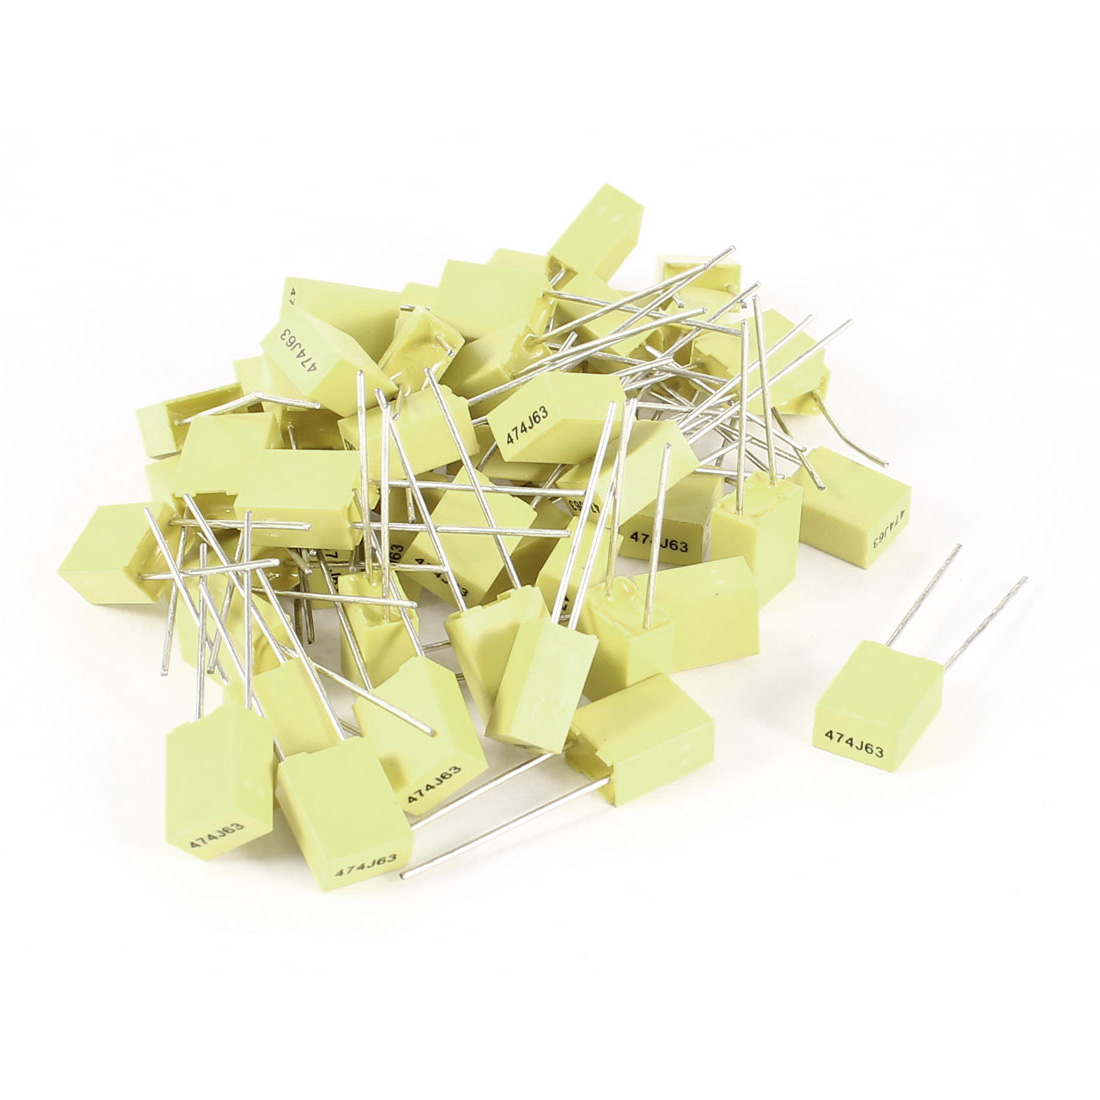 50 Pcs 63V 0.47uF 470NF Radial Lead Box Type Film Correction Capacitors Yellow